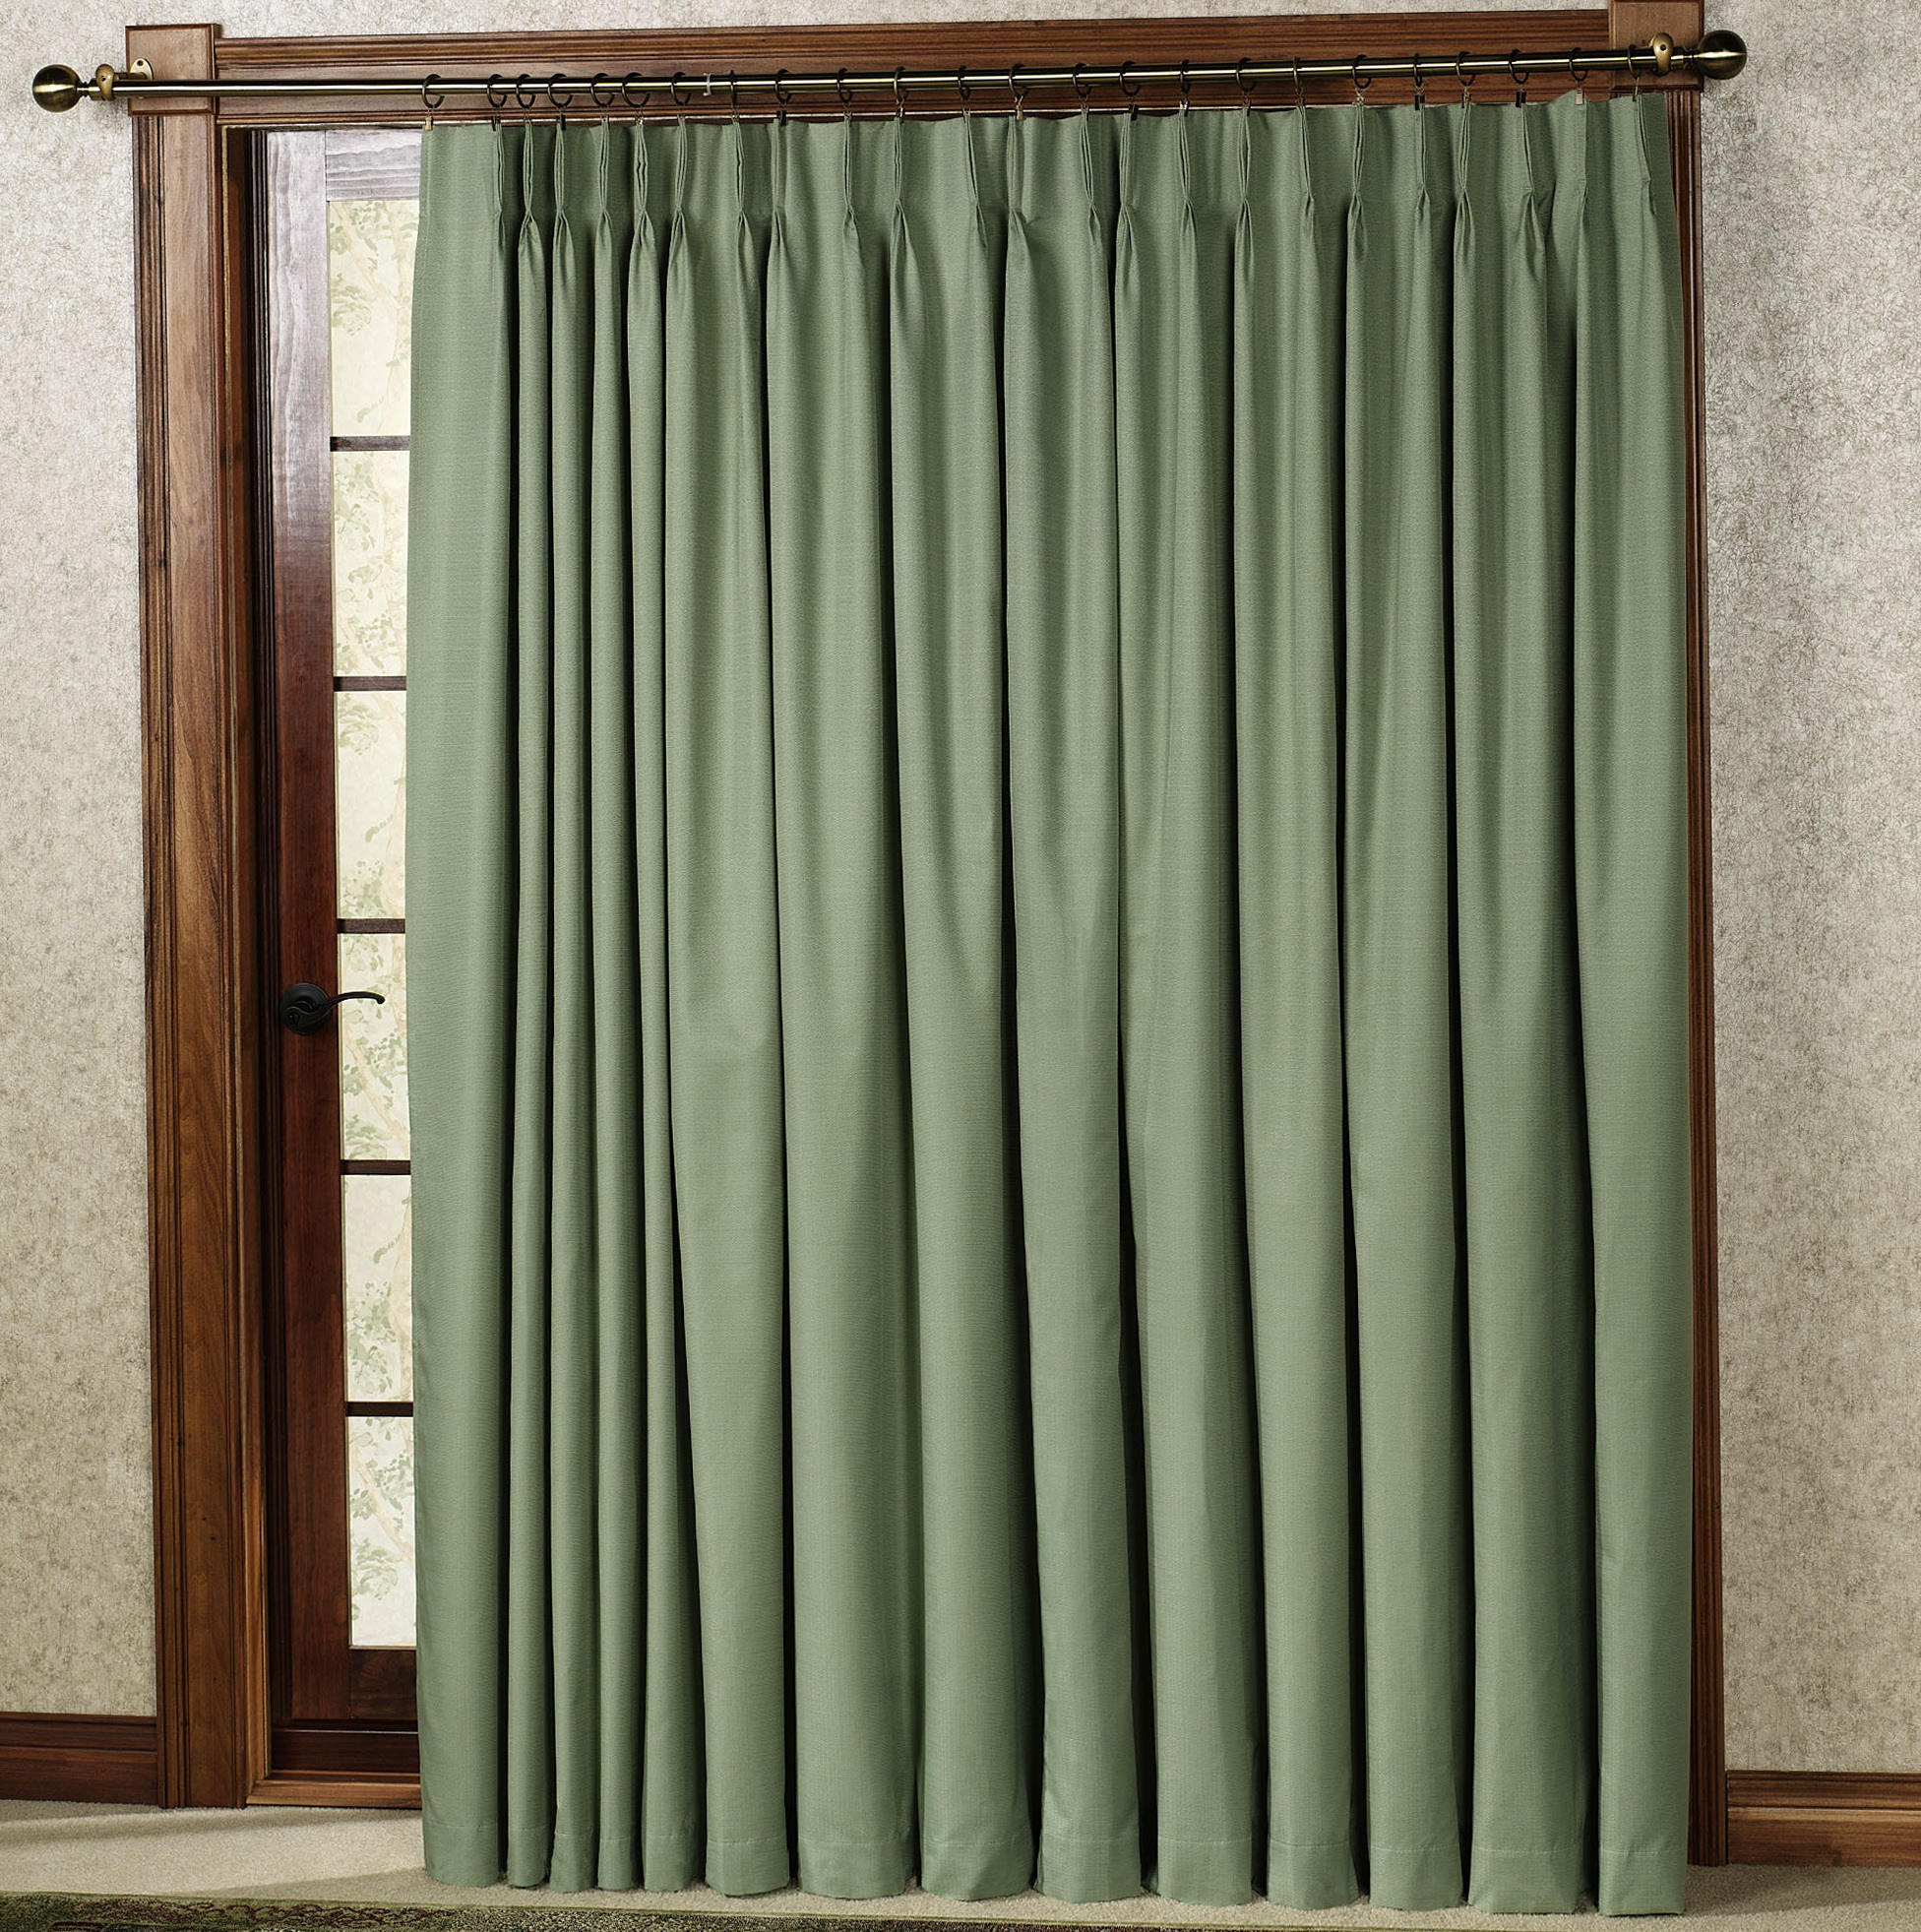 Curtains For Patio Doors With Blinds